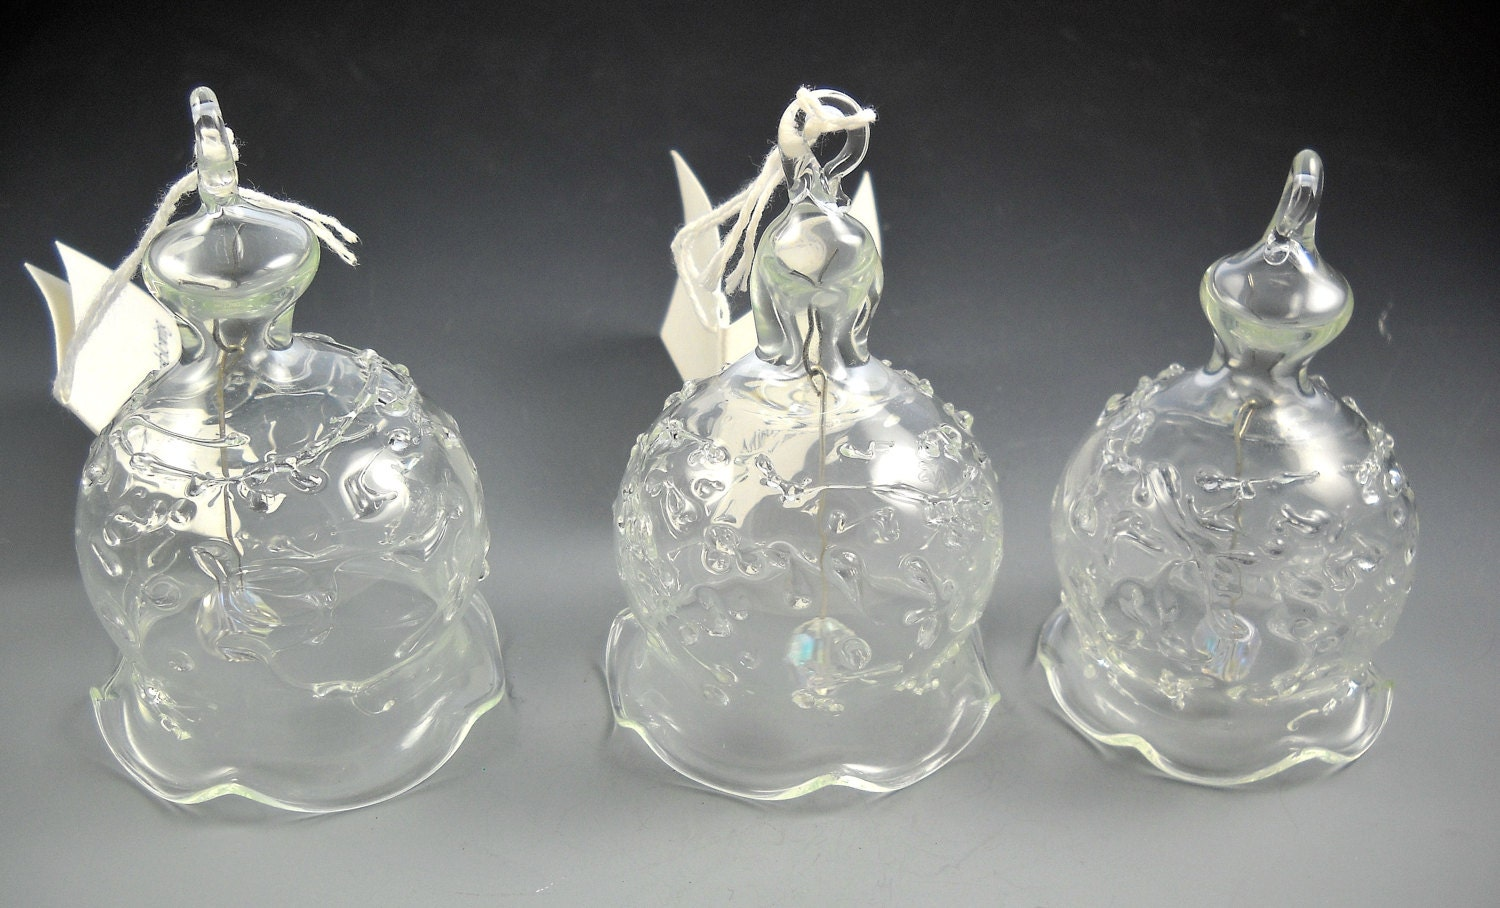 Hand blown clear glass ornaments - Hand Blown Clear Glass Bell Ornaments Set Of 3 By Artistry In Glassblowing Hal A Lindsley